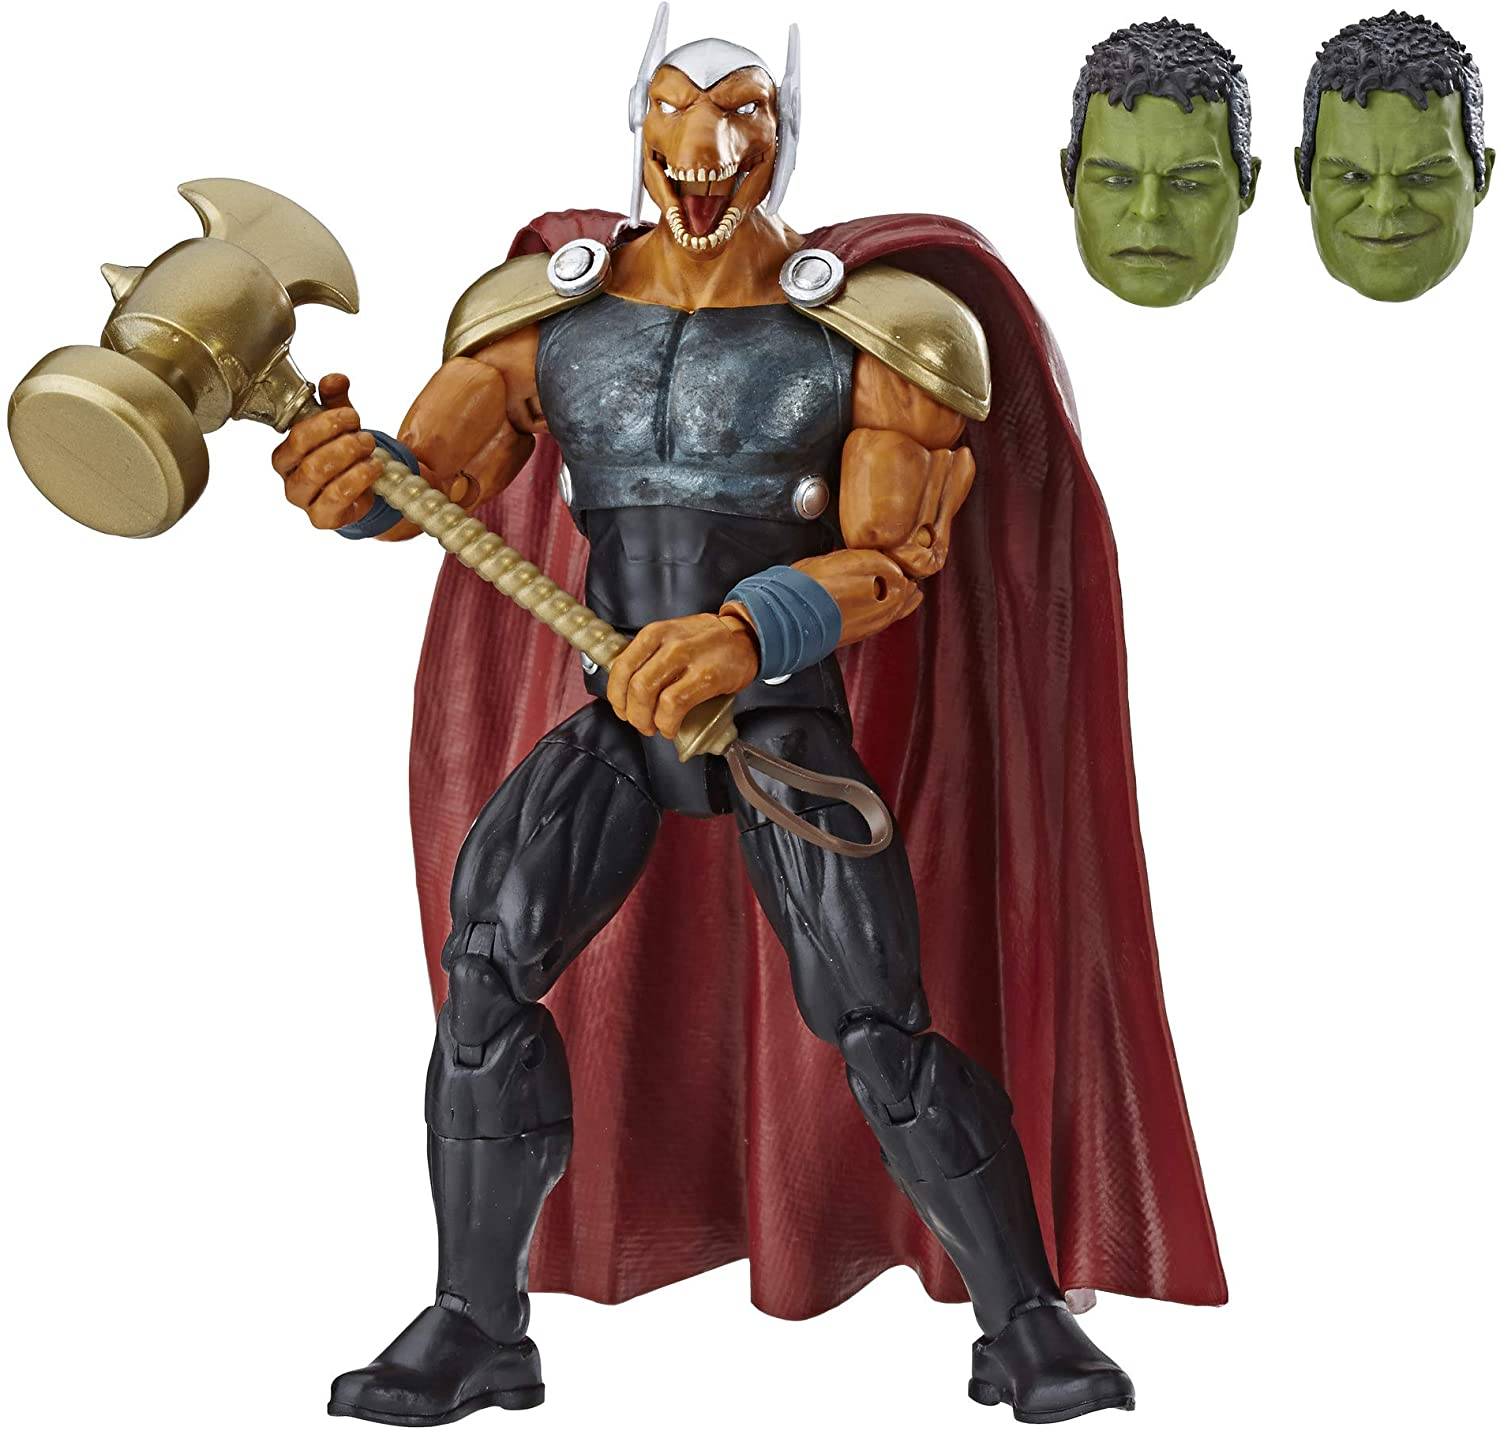 "Marvel Legends Series Beta Ray Bill 6"" Collectible Action Figure Toy for Ages 6 & Up with Accessories & Build-A-Figurepiece"